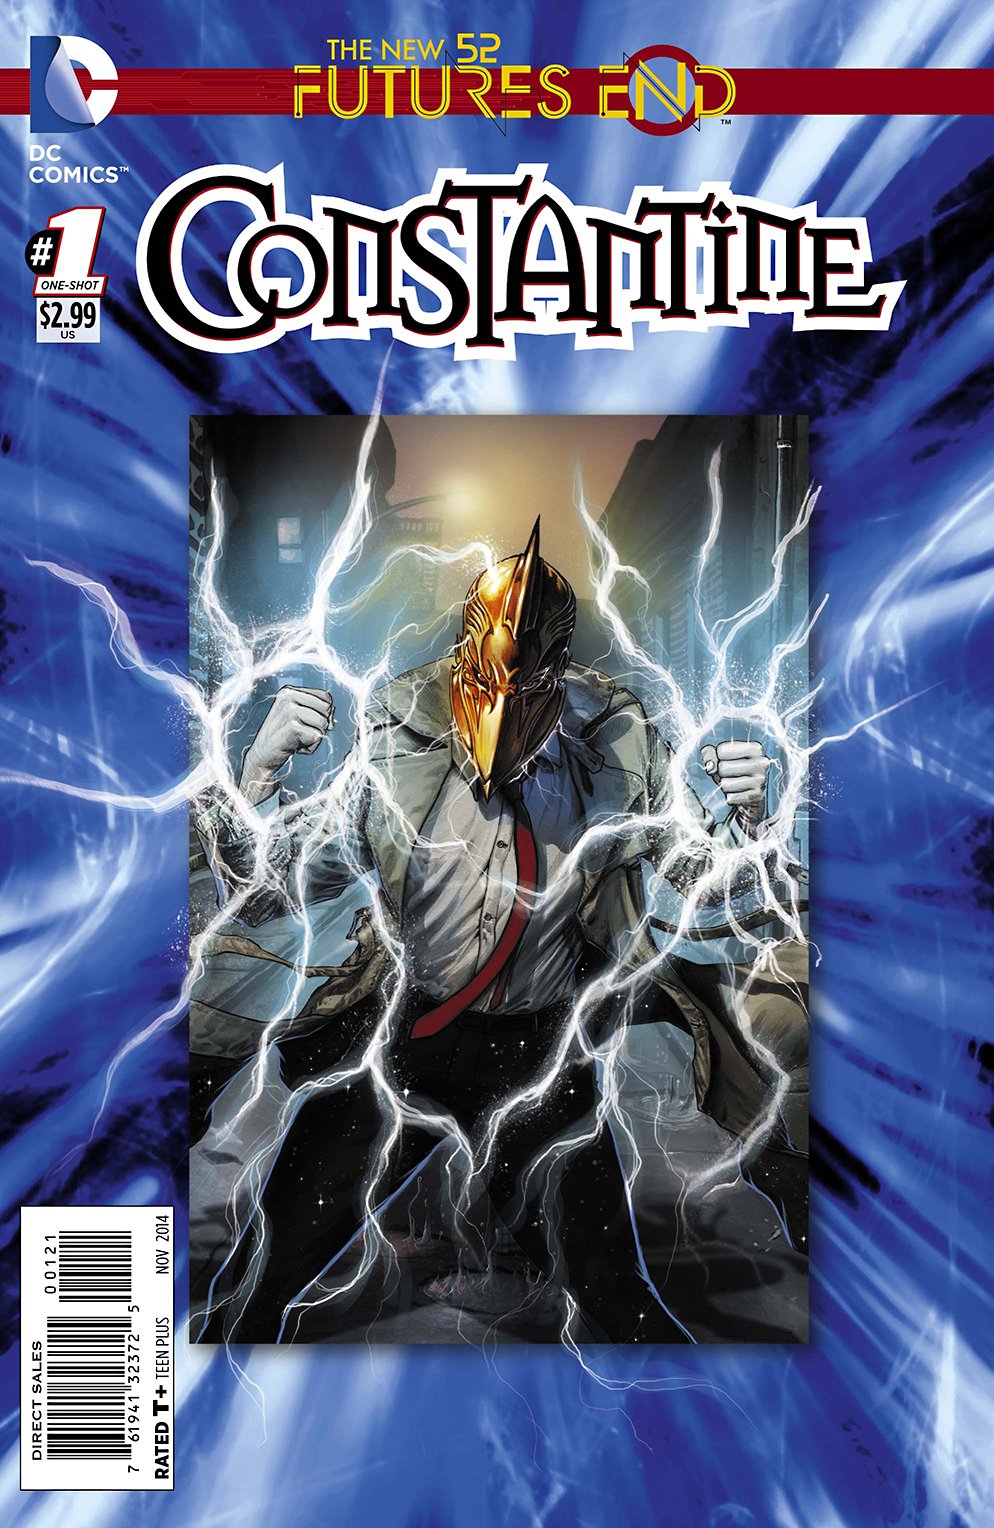 CONSTANTINE FUTURES END #1 STANDARD ED